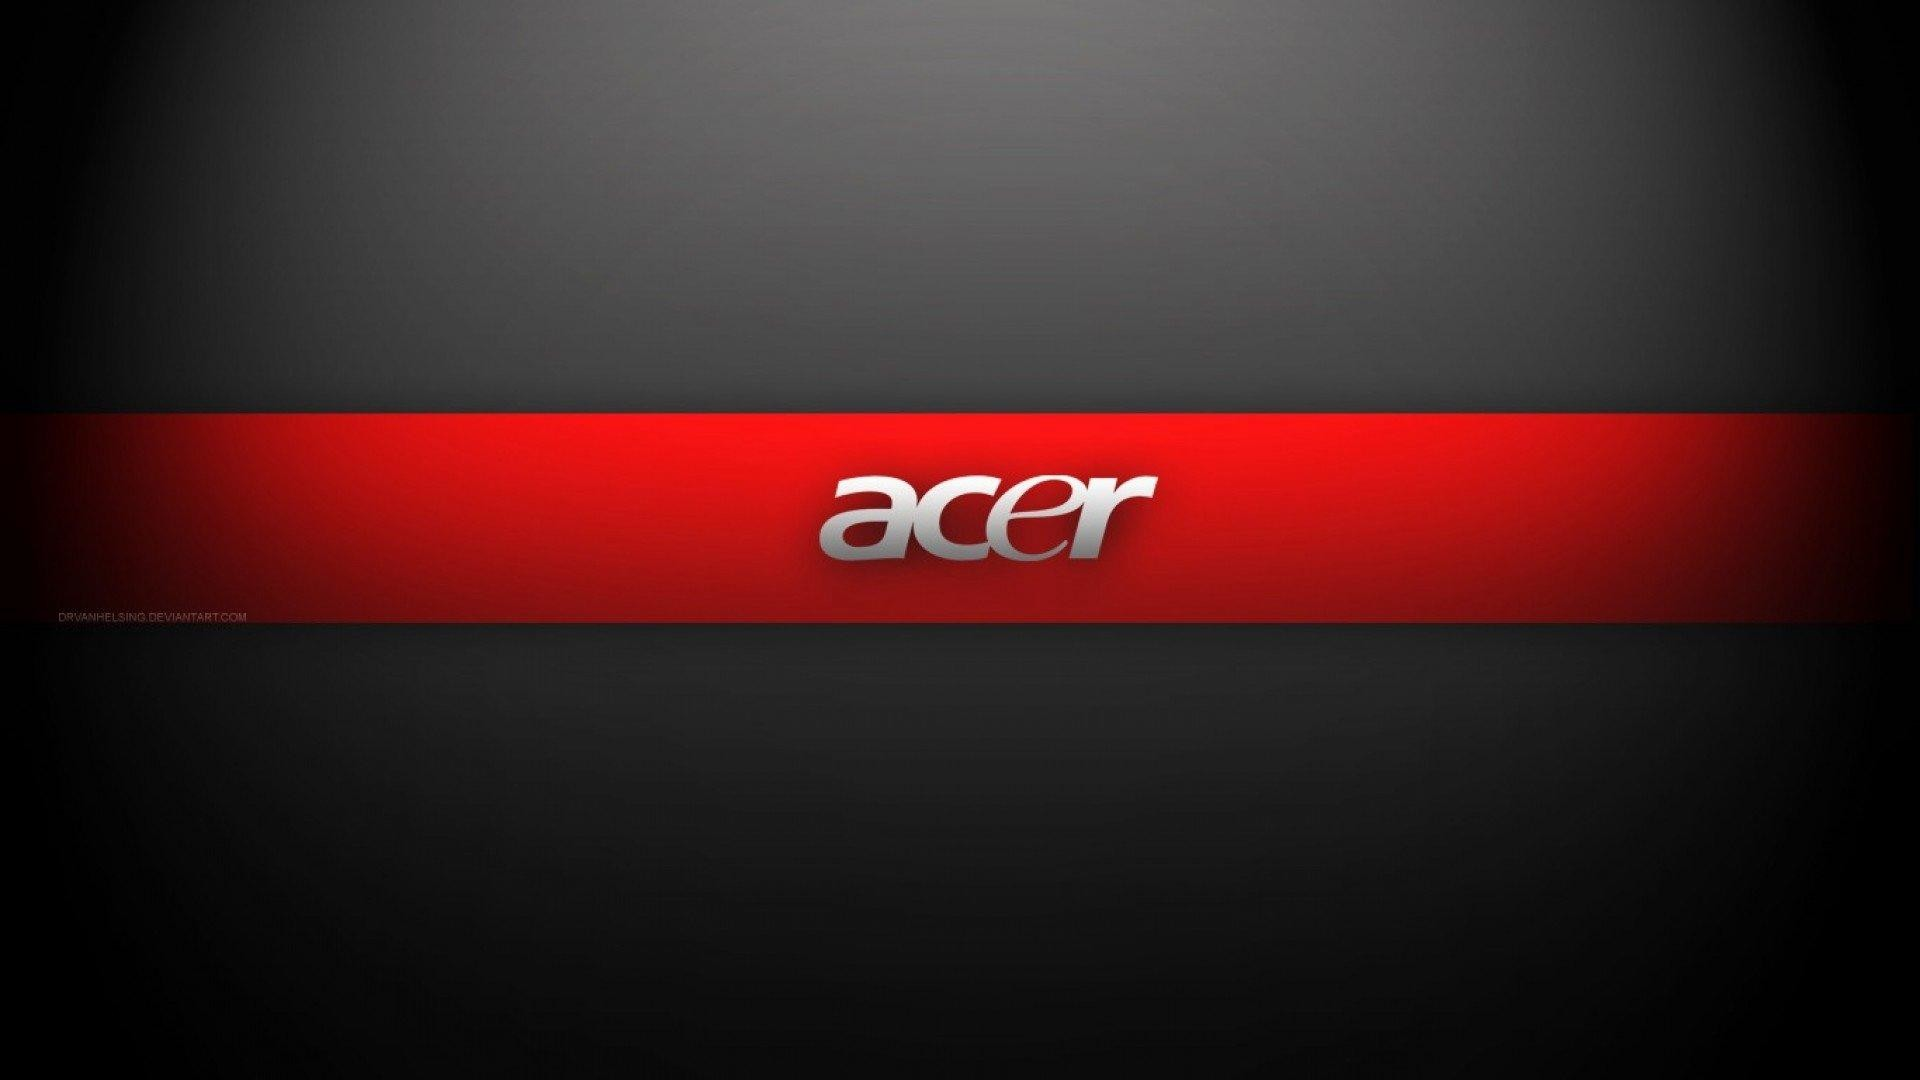 Acer HD Wallpapers, Free Wallpaper Downloads, Acer HD ...